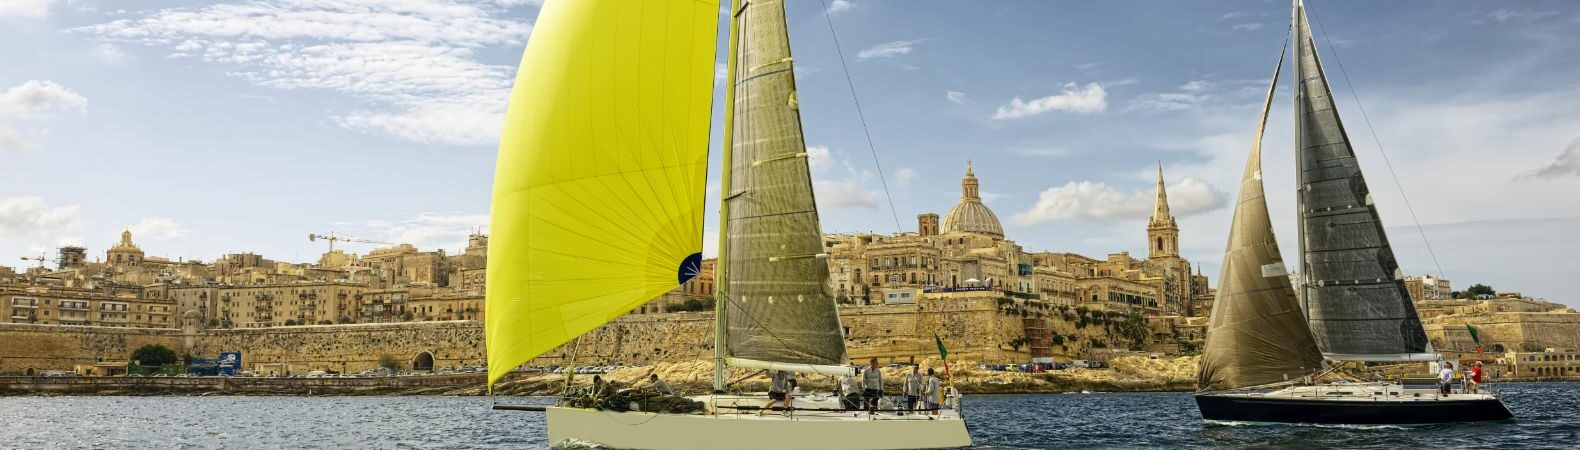 sailing course available in malta